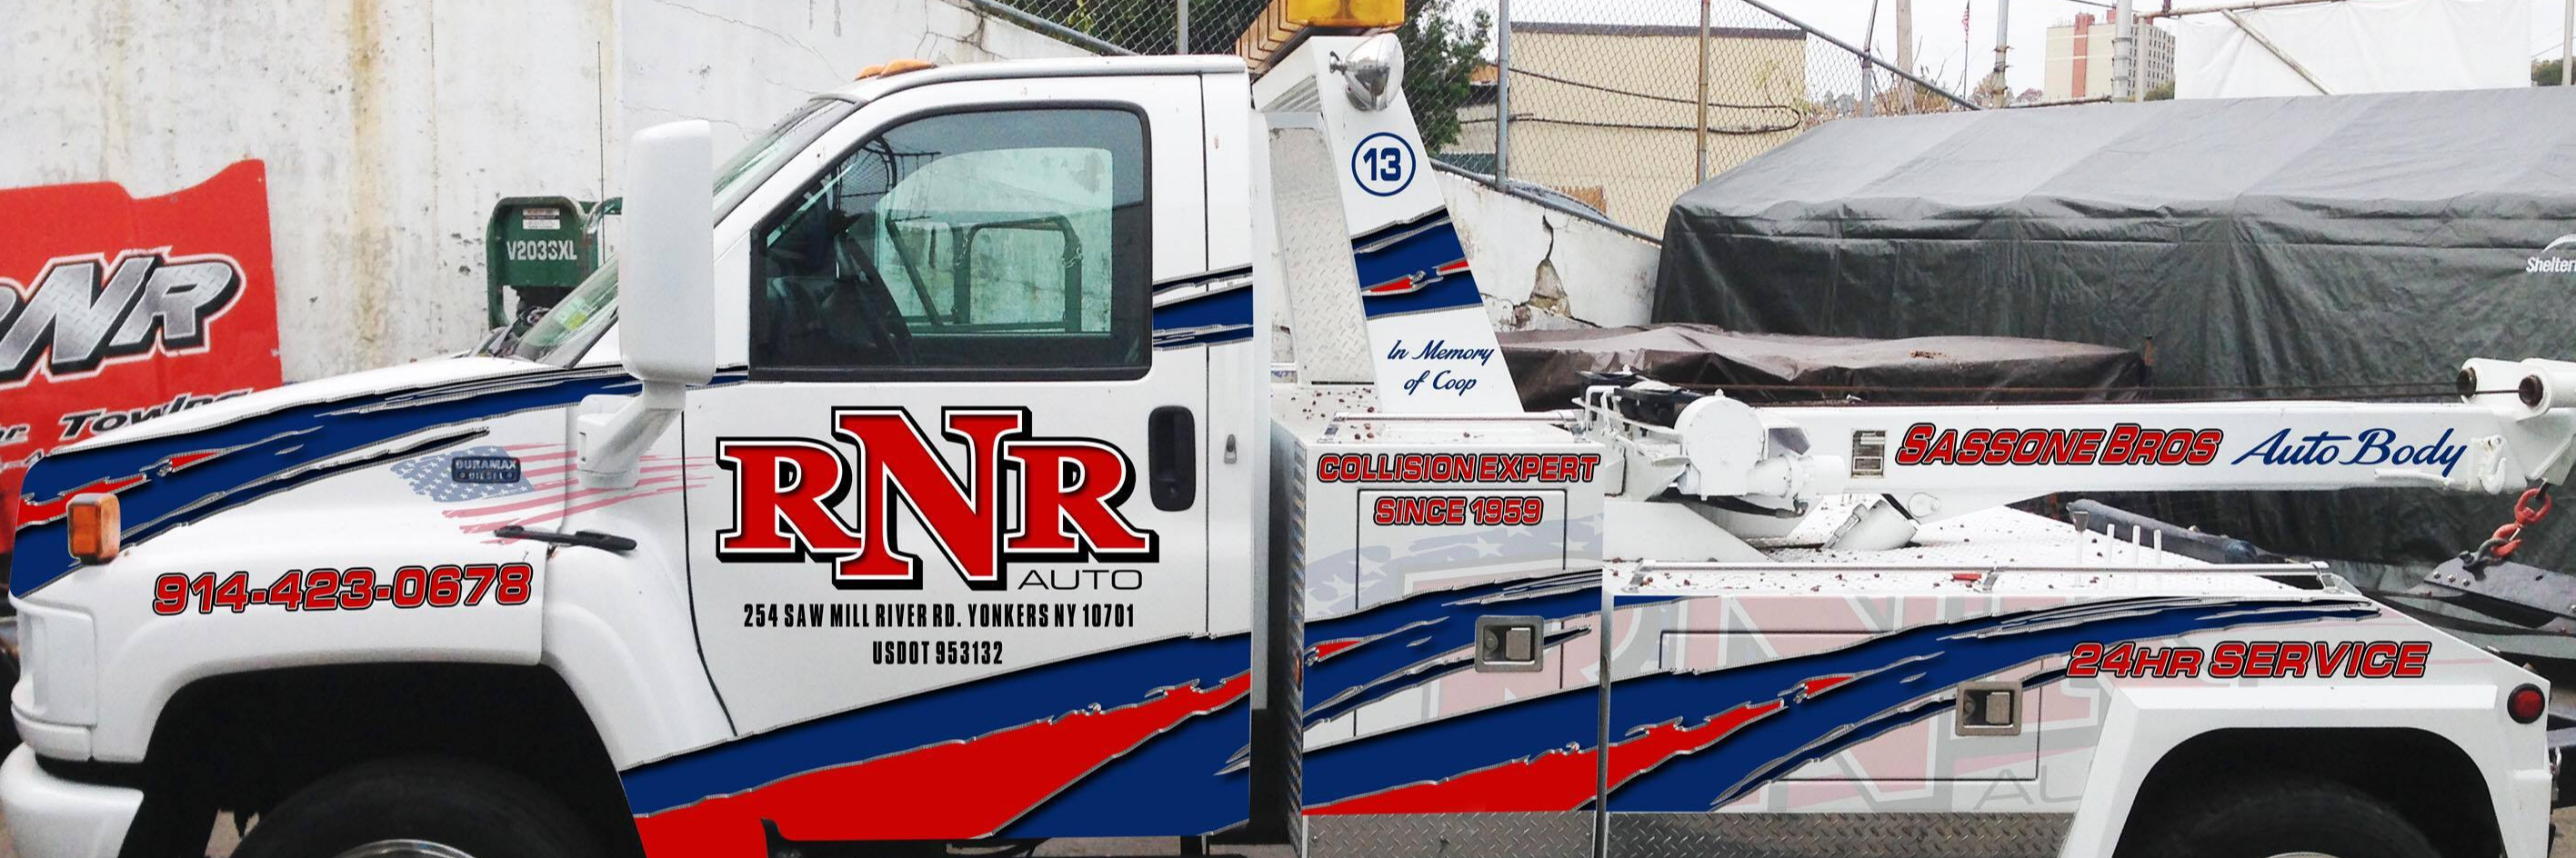 RNR Auto LLC Towing.com Profile Banner